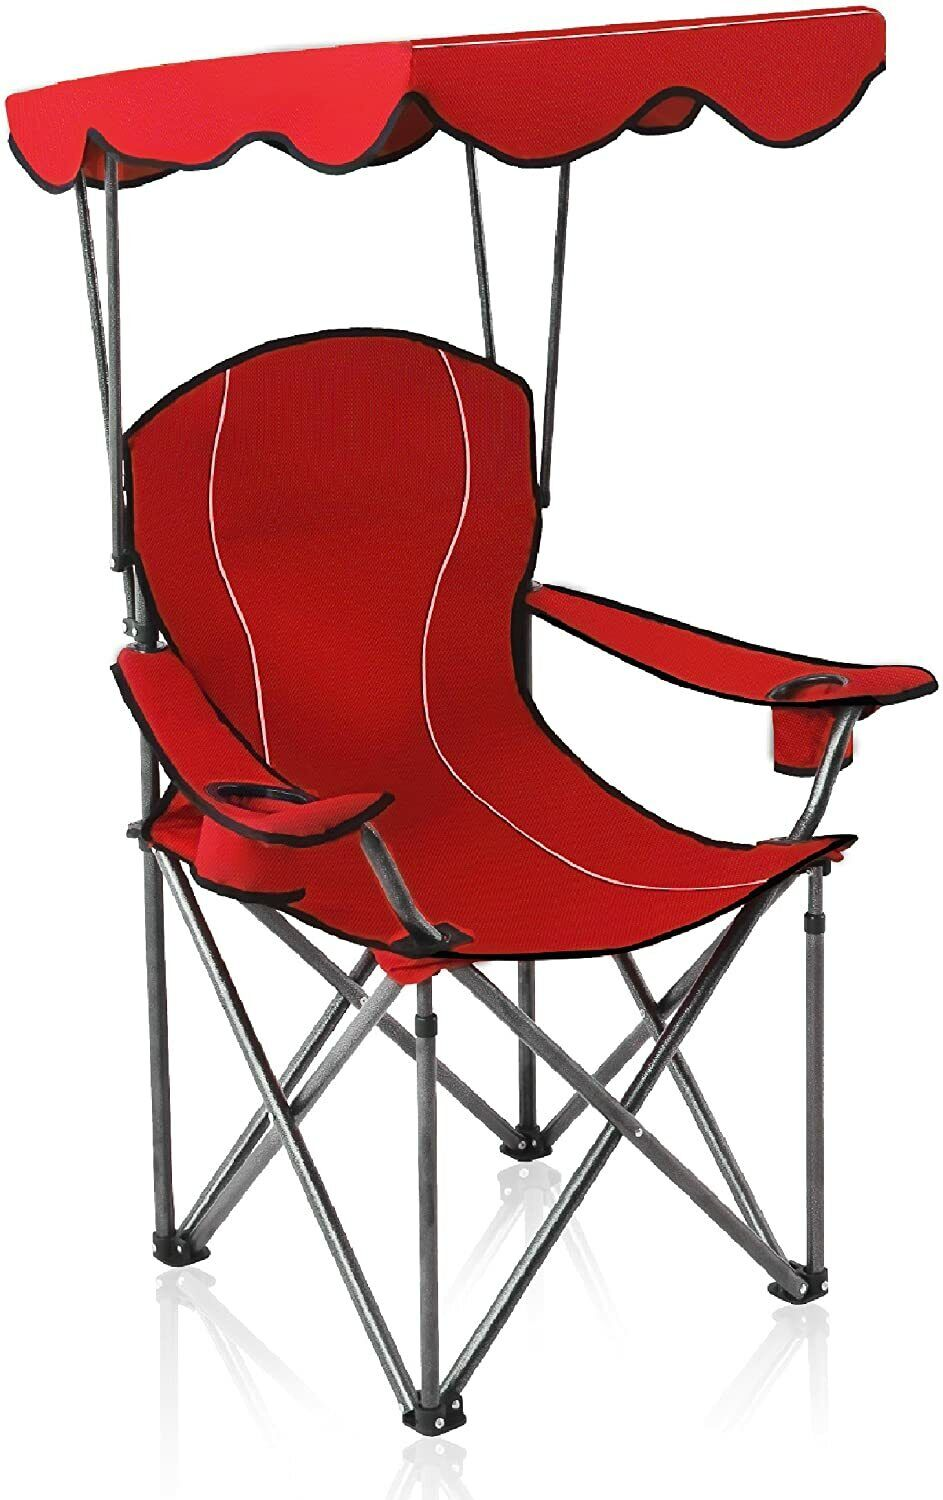 Camping Chairs With Canopy Shade, Red And Black Folding Patio Chairs